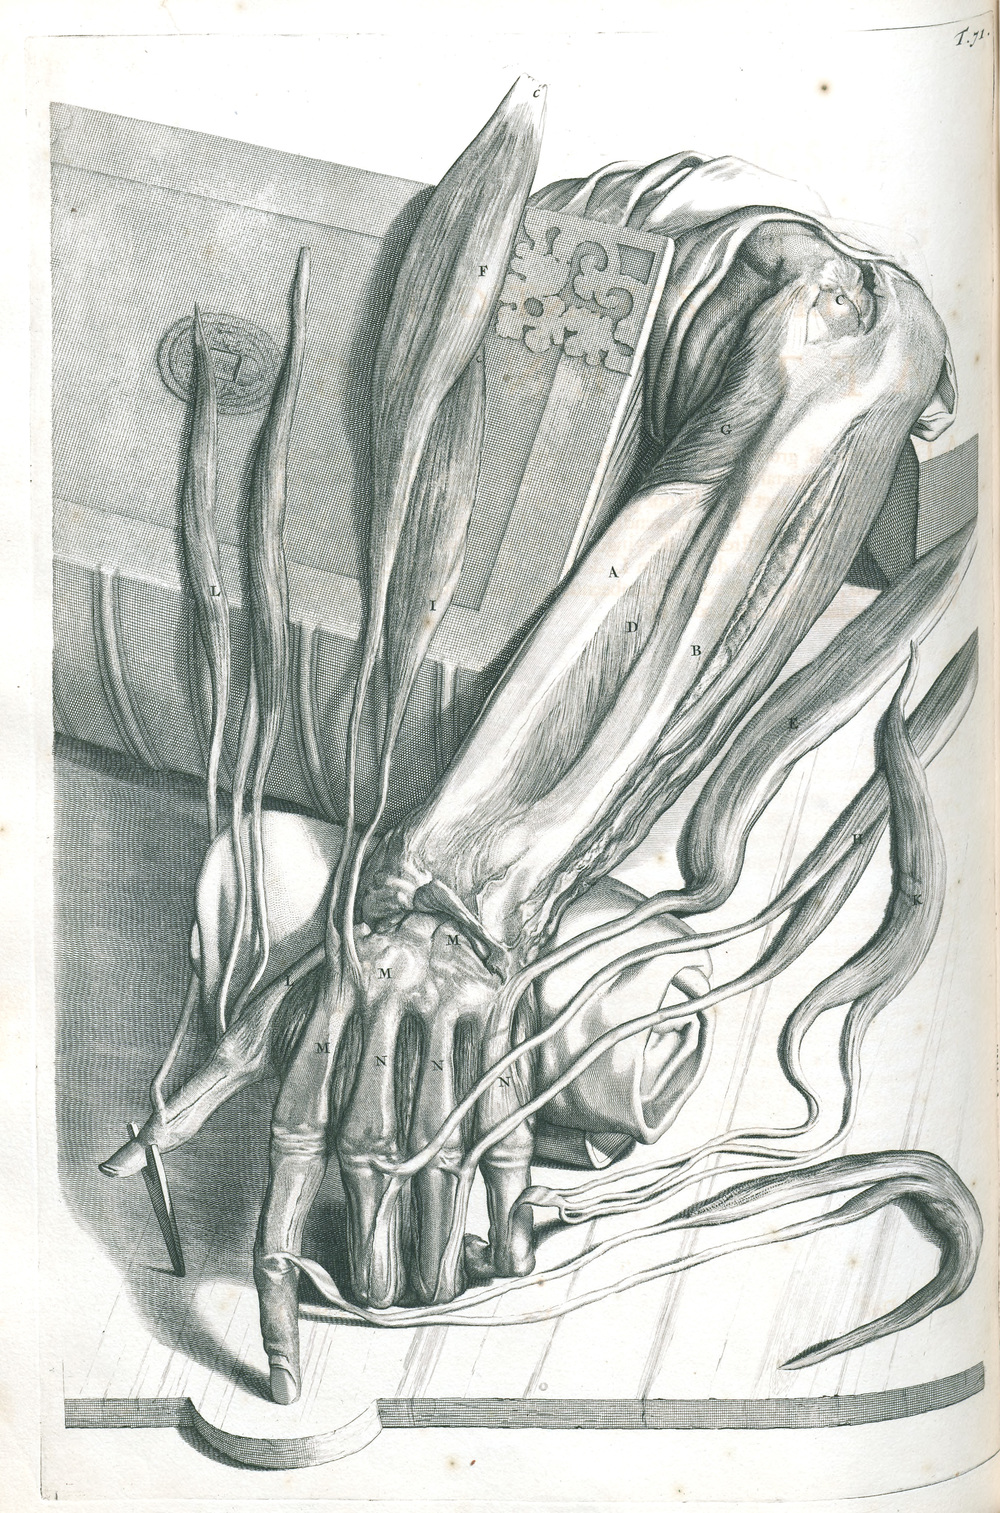 Plate 71 showing the dissection of the left forearm and hand. The hand is strategically posed, perhaps to reference a gesture often depicted in Renaissance art.    Govard Bidloo (1649-1713).  Anatomia humani corporis.  Amsterdam: Sumptibus viduae Joannis à Someren, haeredum Joannis à Dyk, Henrici & viduae Theodori Boom, 1685. Heirs 724 Illustration by Gerard de Lairesse.